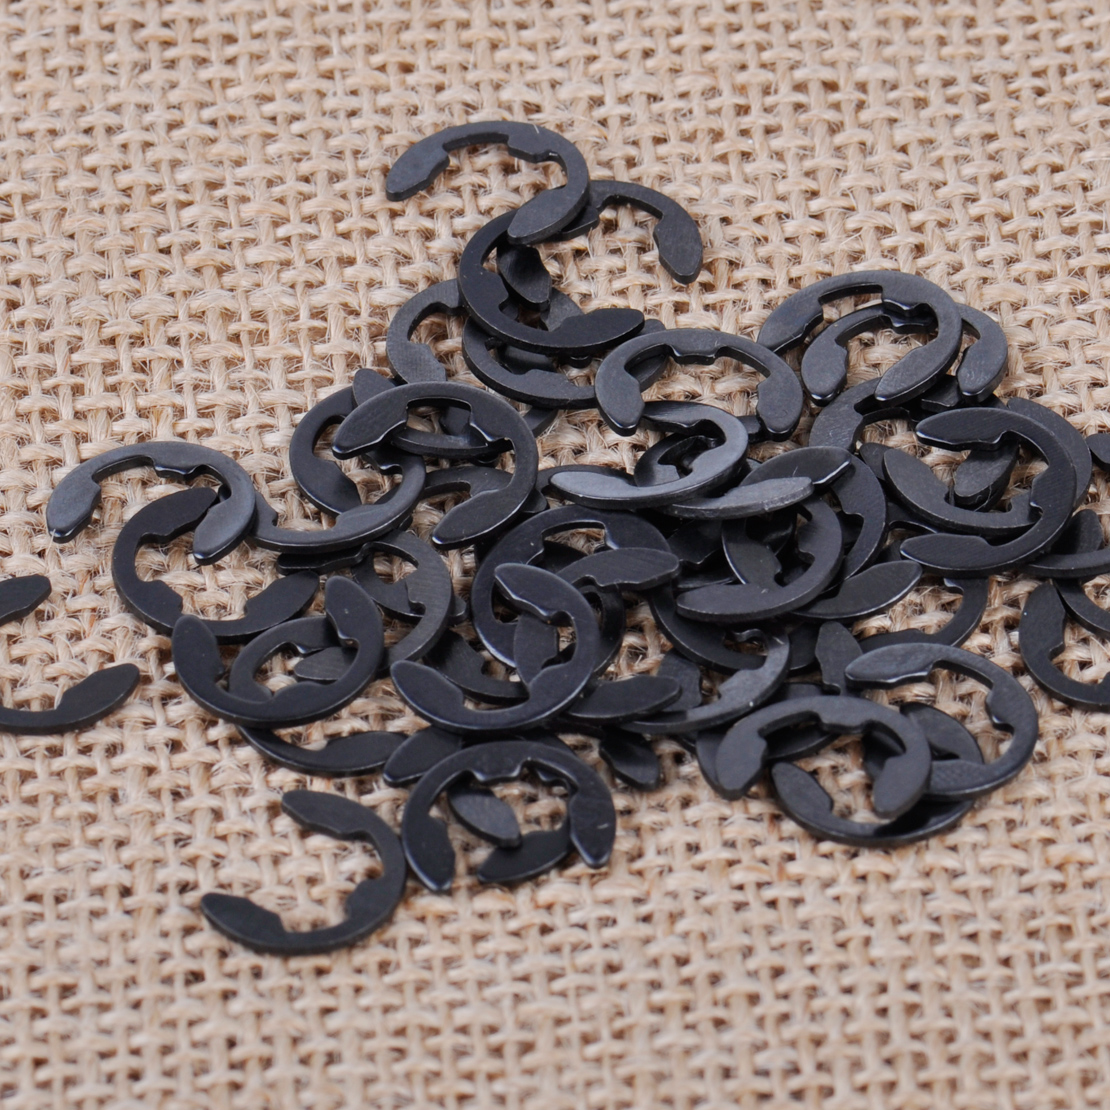 LETAOSK 50Pcs Sprocket Washer E Clip Fit For Stihl MS170 MS180 021 025 Chainsaw 9460 624 0801